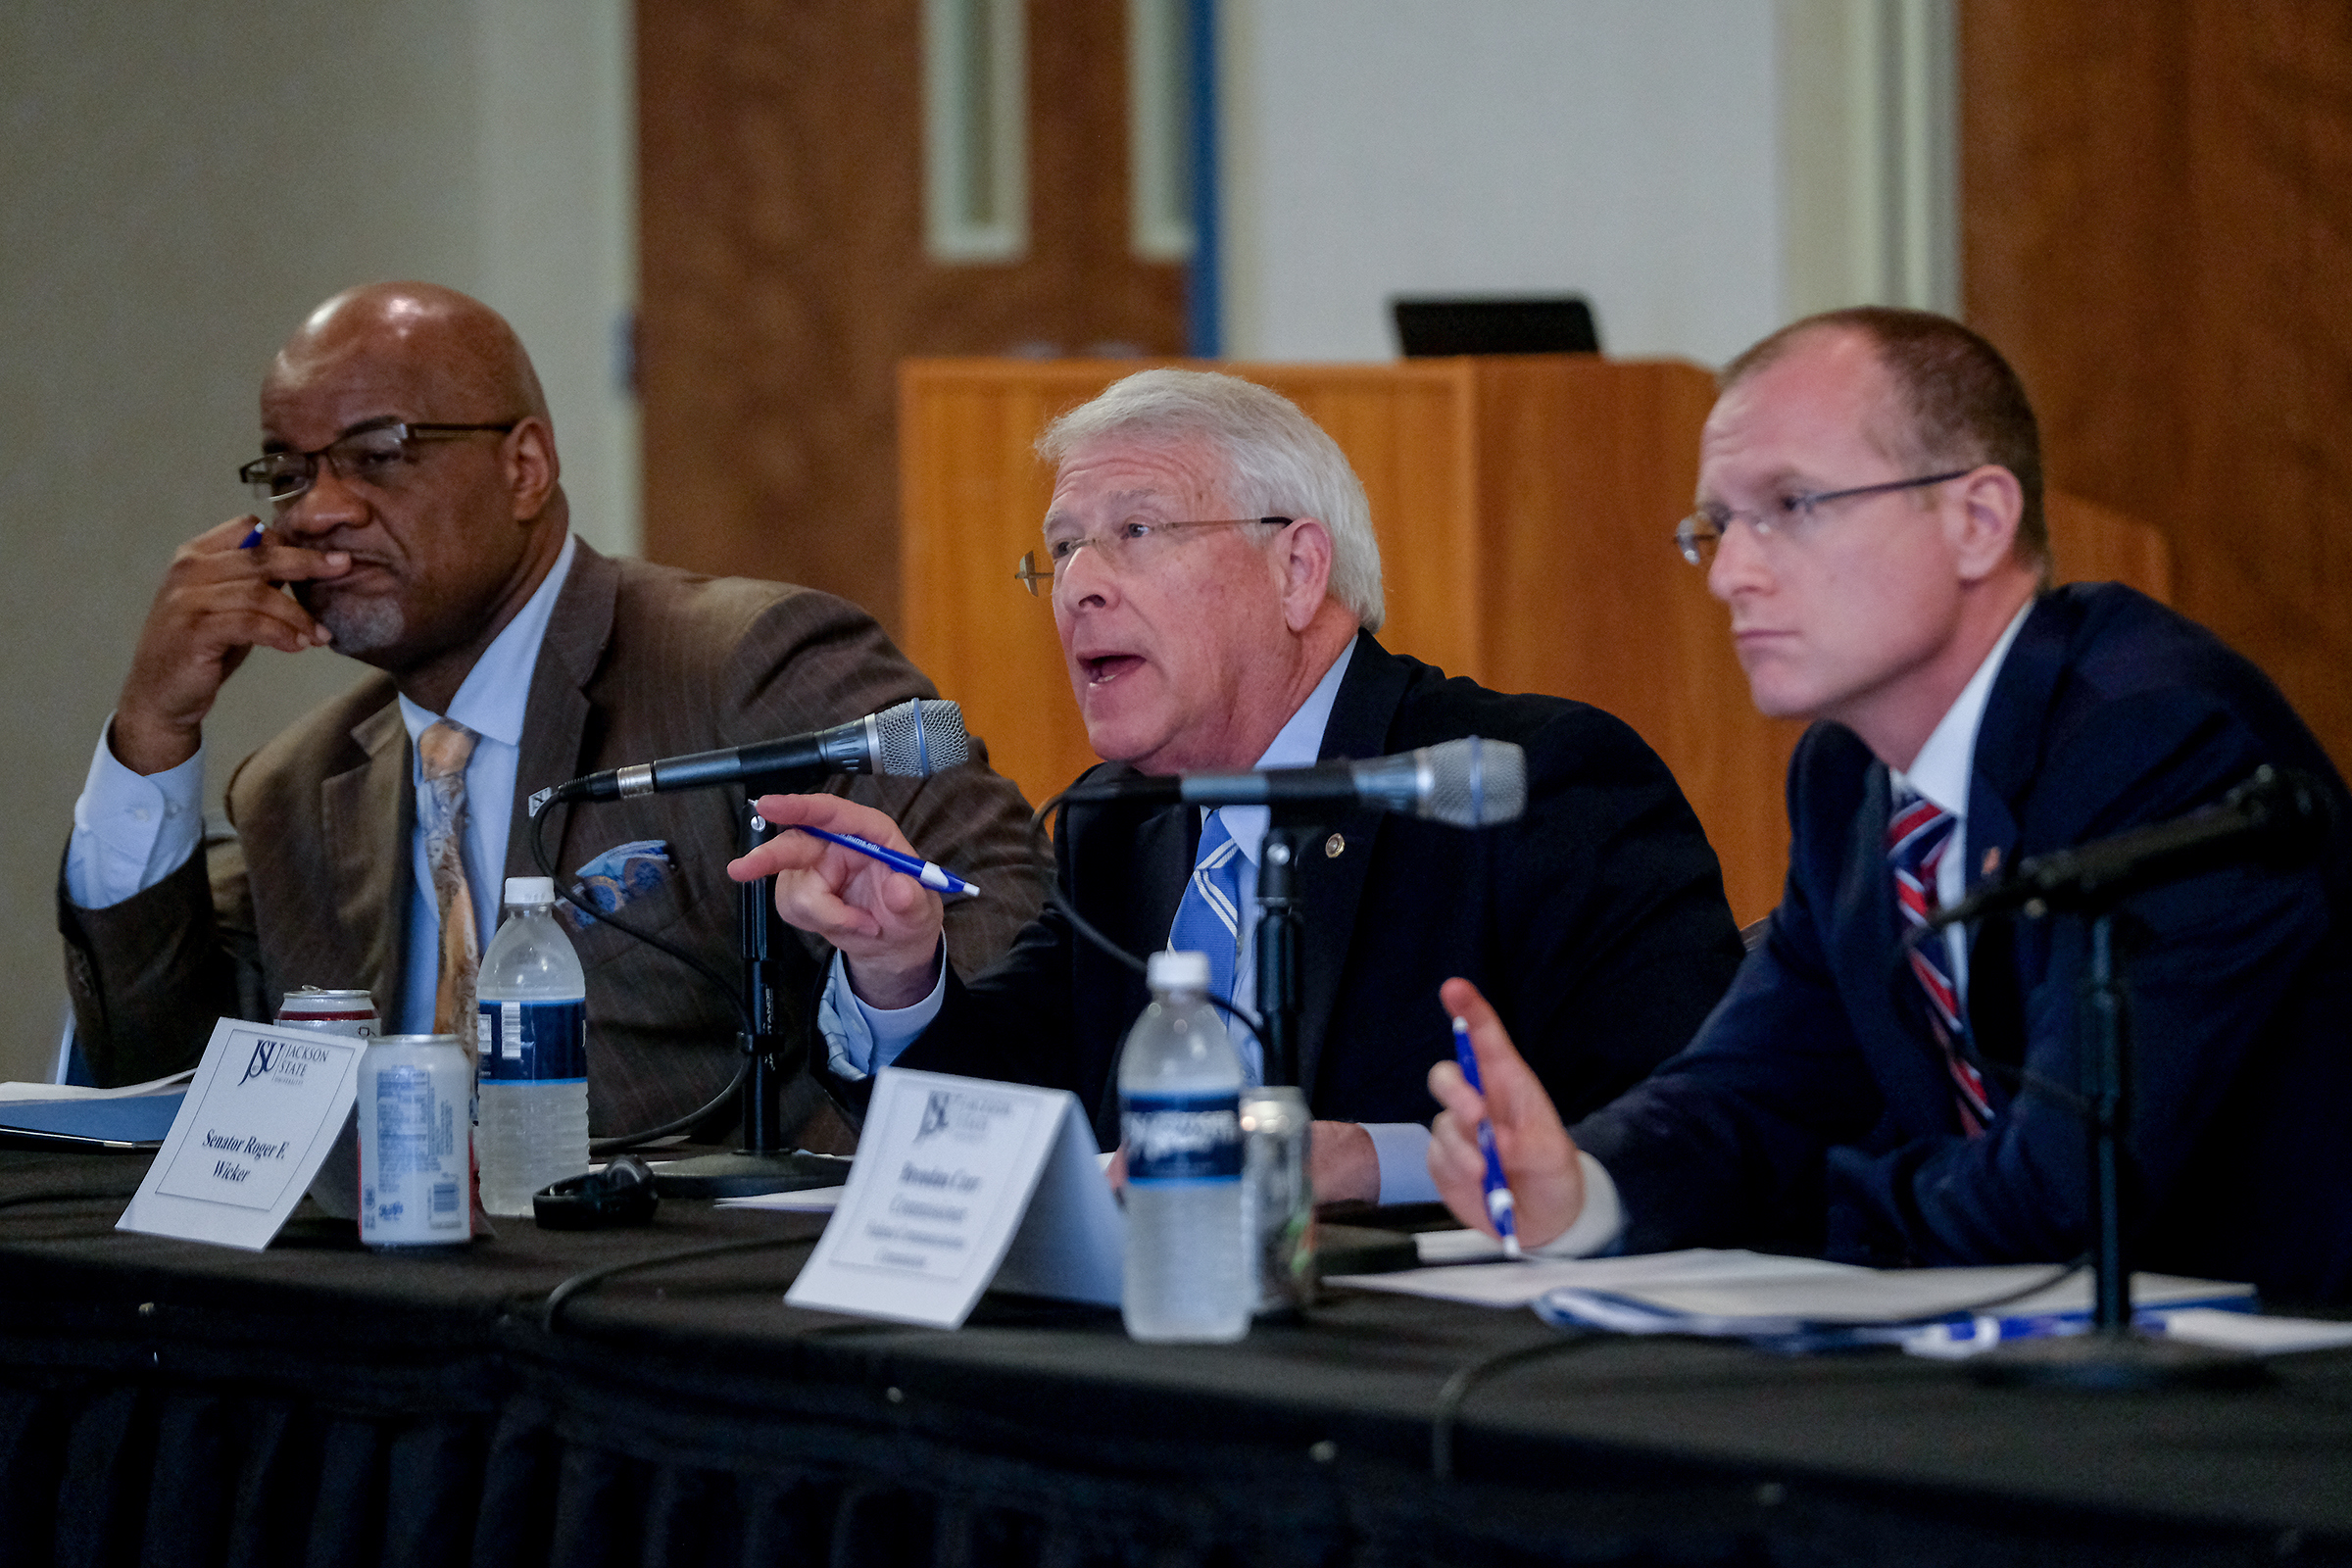 A pensive JSU President William B. Bynum Jr. listens as Mississippi U.S. Sen. Roger Wicker engages experts in a dialogue about the digital divide and a gap in Mississippi's qualified workforce. (Photo by Charles A. Smith/JSU)